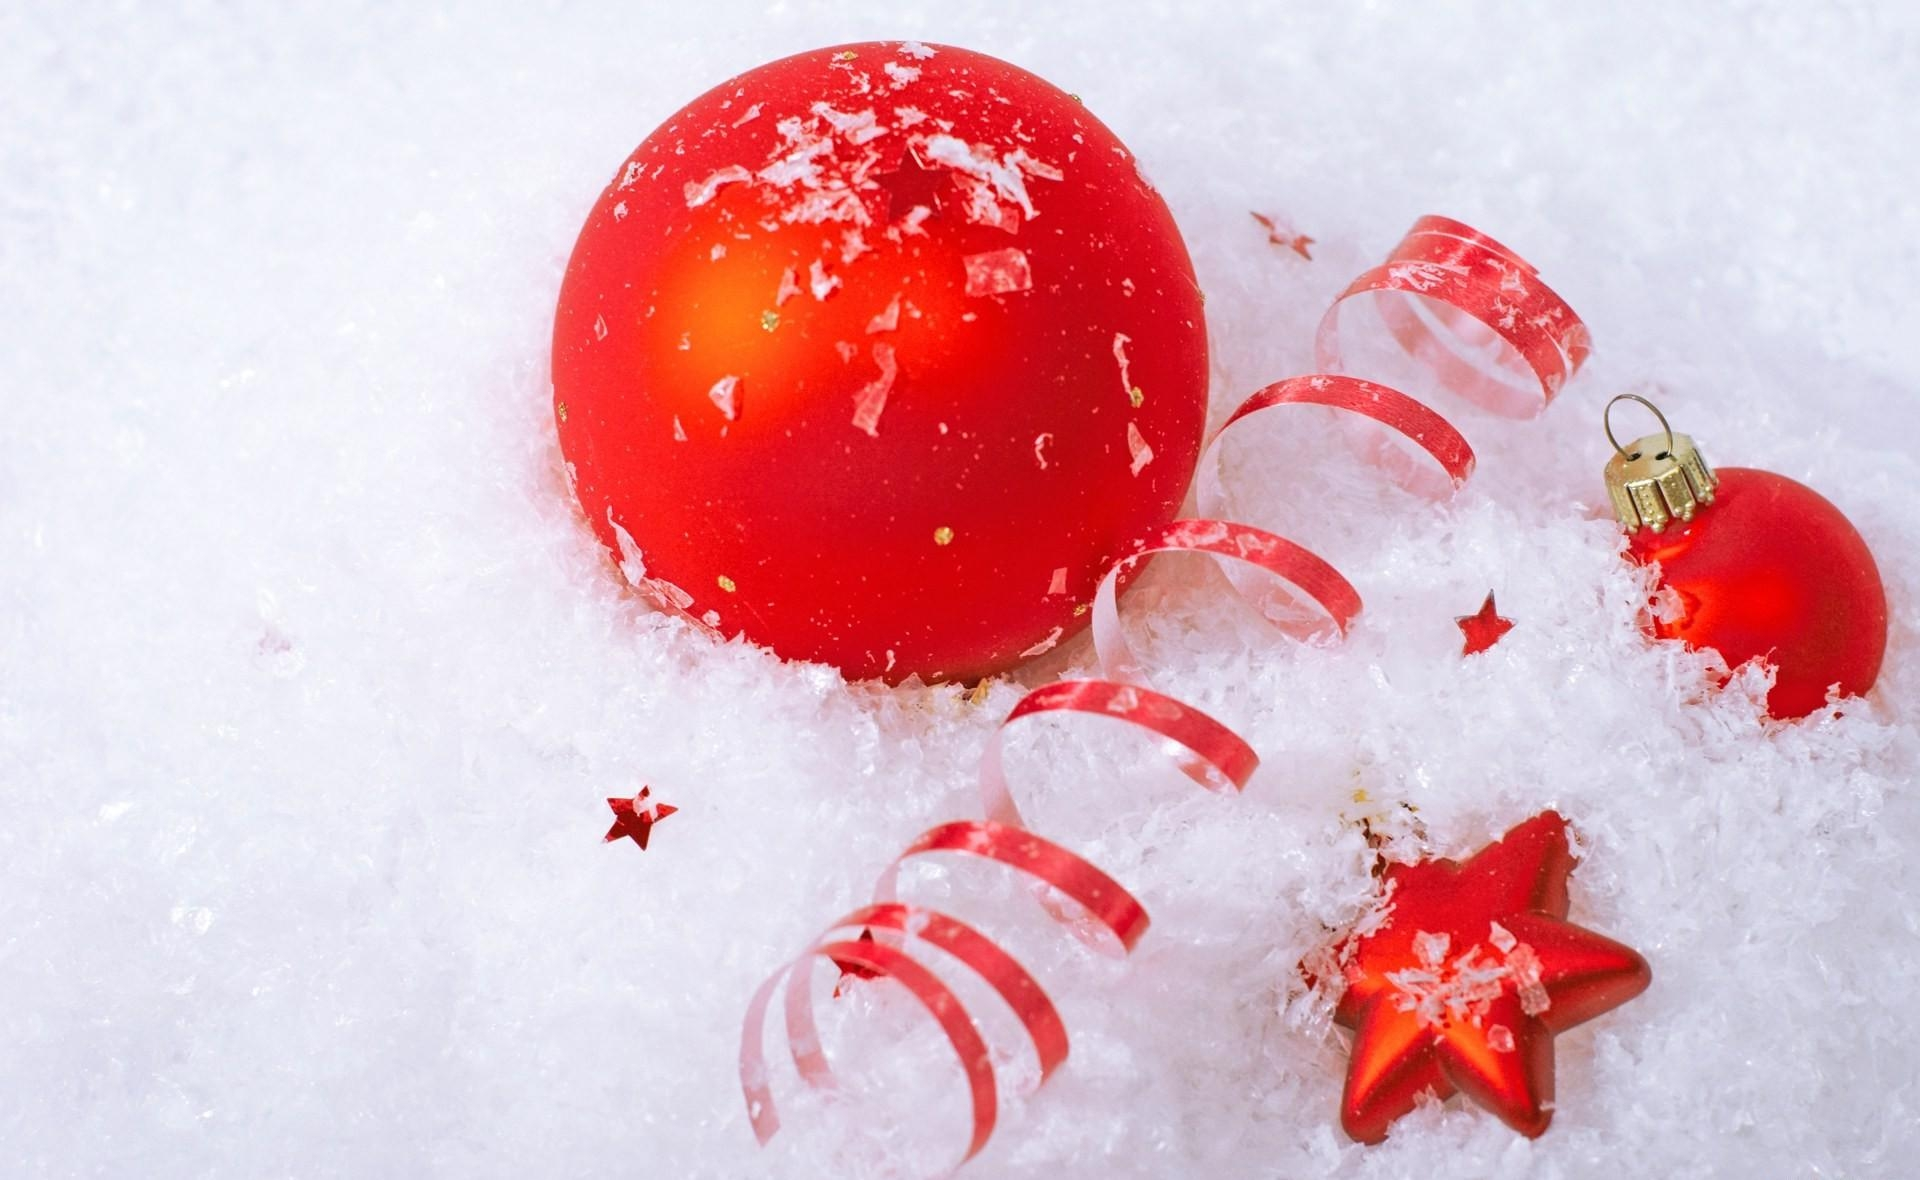 119540 download wallpaper Holidays, Christmas Decorations, Christmas Tree Toys, Balls, Star, Snow, Attributes, Holiday screensavers and pictures for free